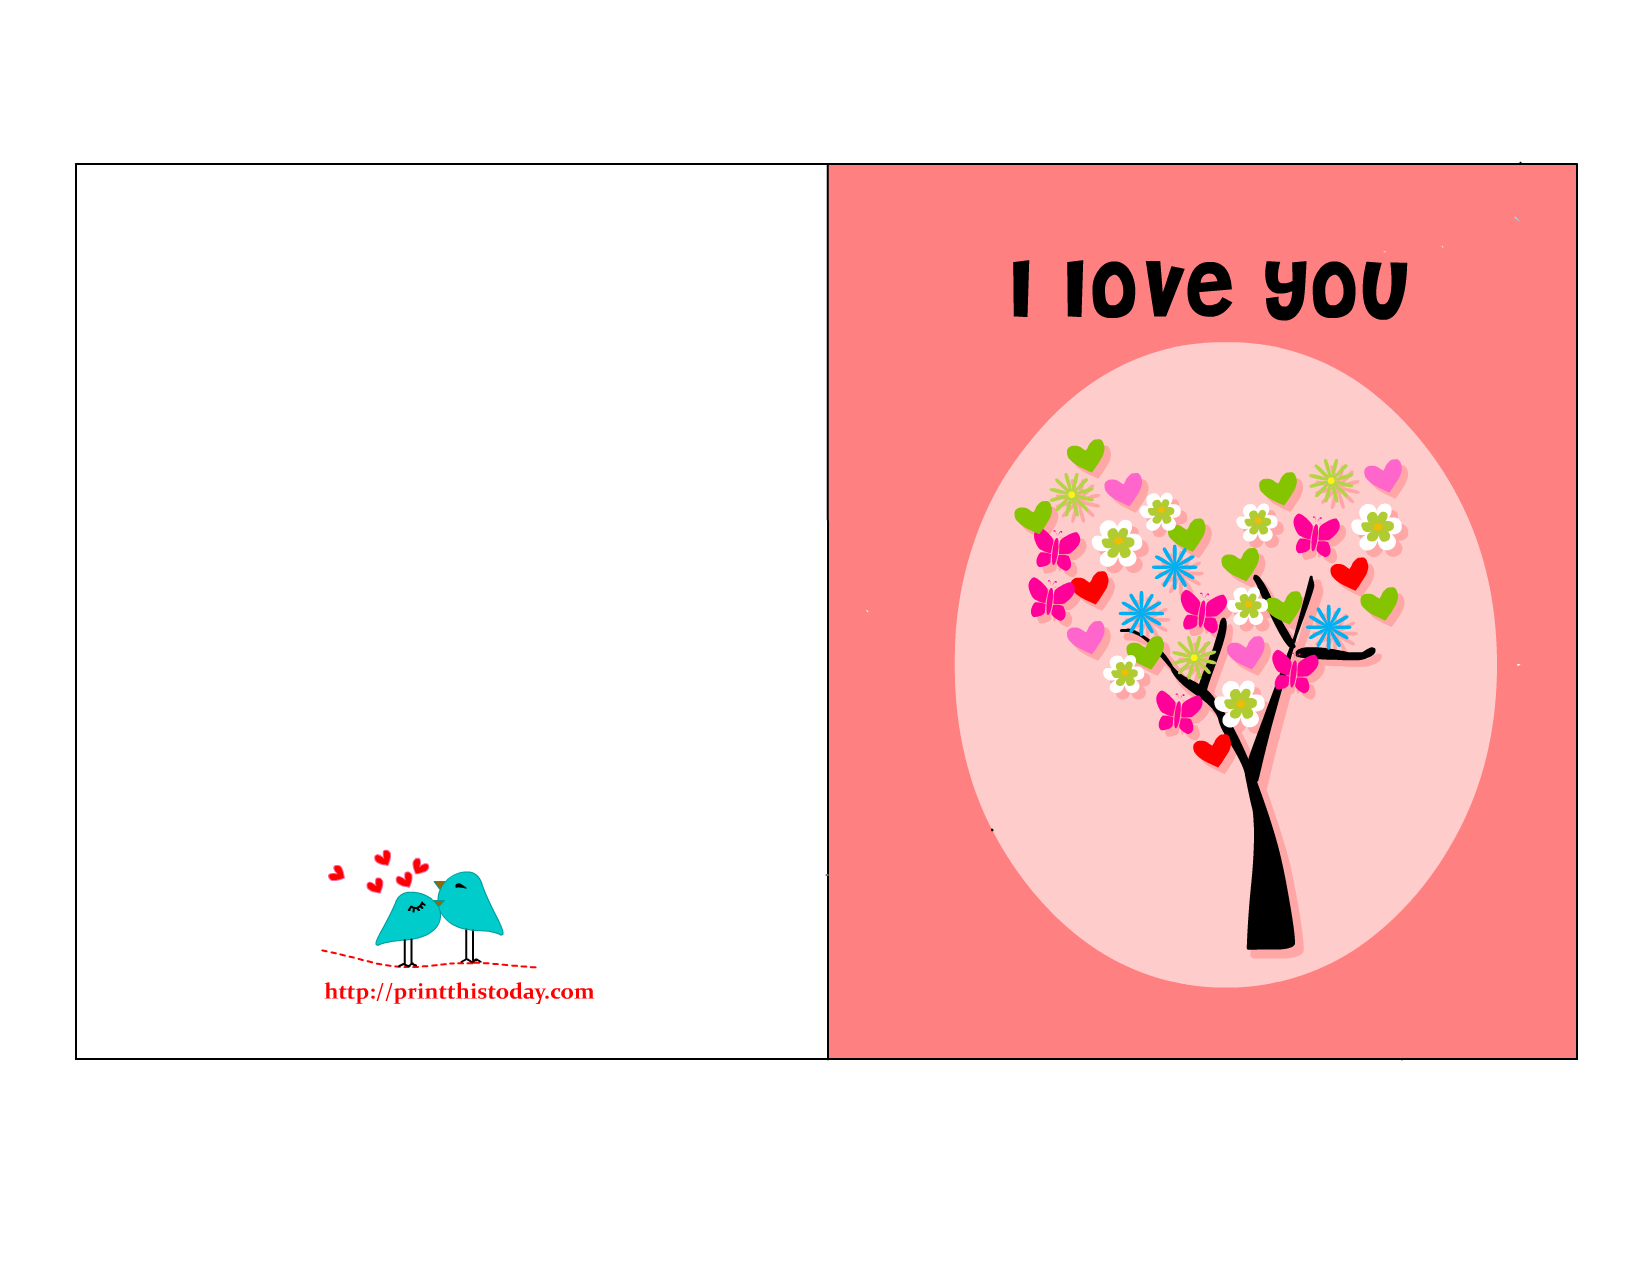 graphic regarding Free Printable Love Cards titled Cost-free Printable Valentine Playing cards for Him